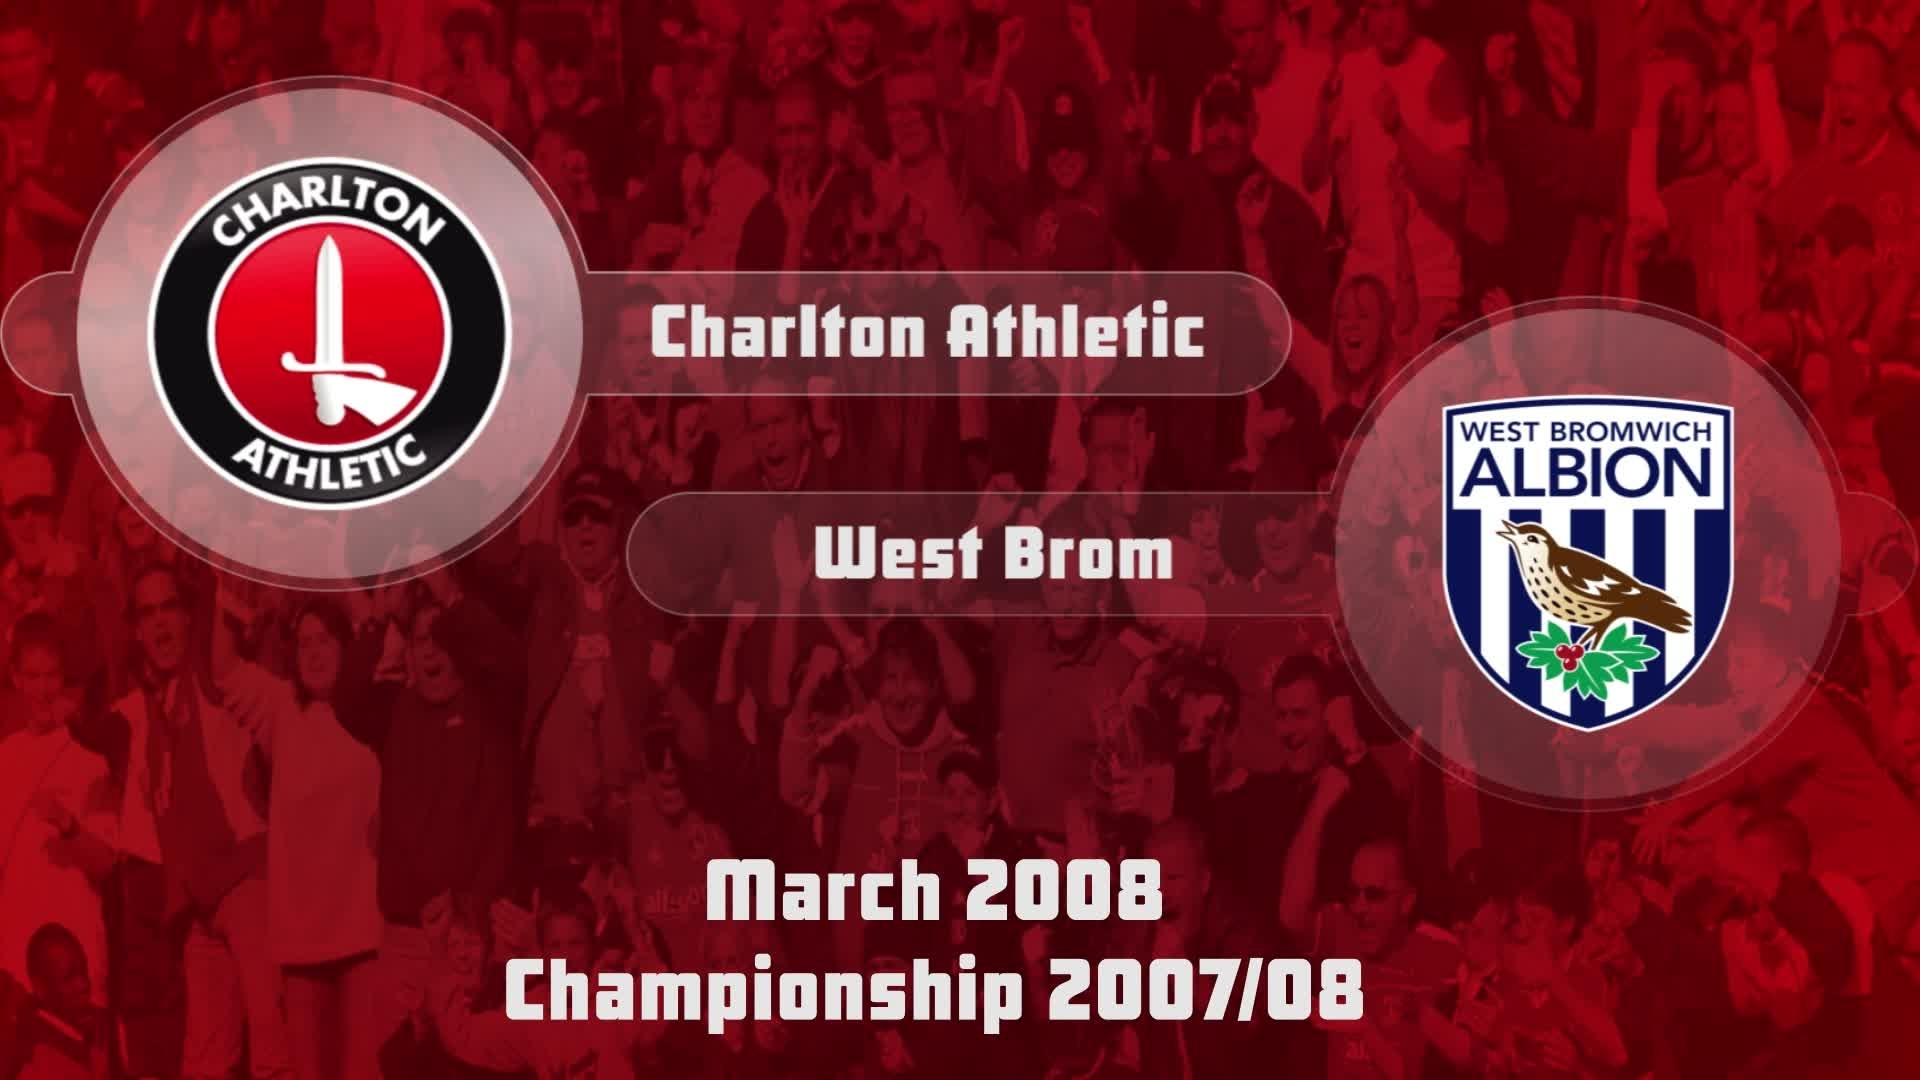 45 HIGHLIGHTS | Charlton 1 West Brom 1 (March 2008)